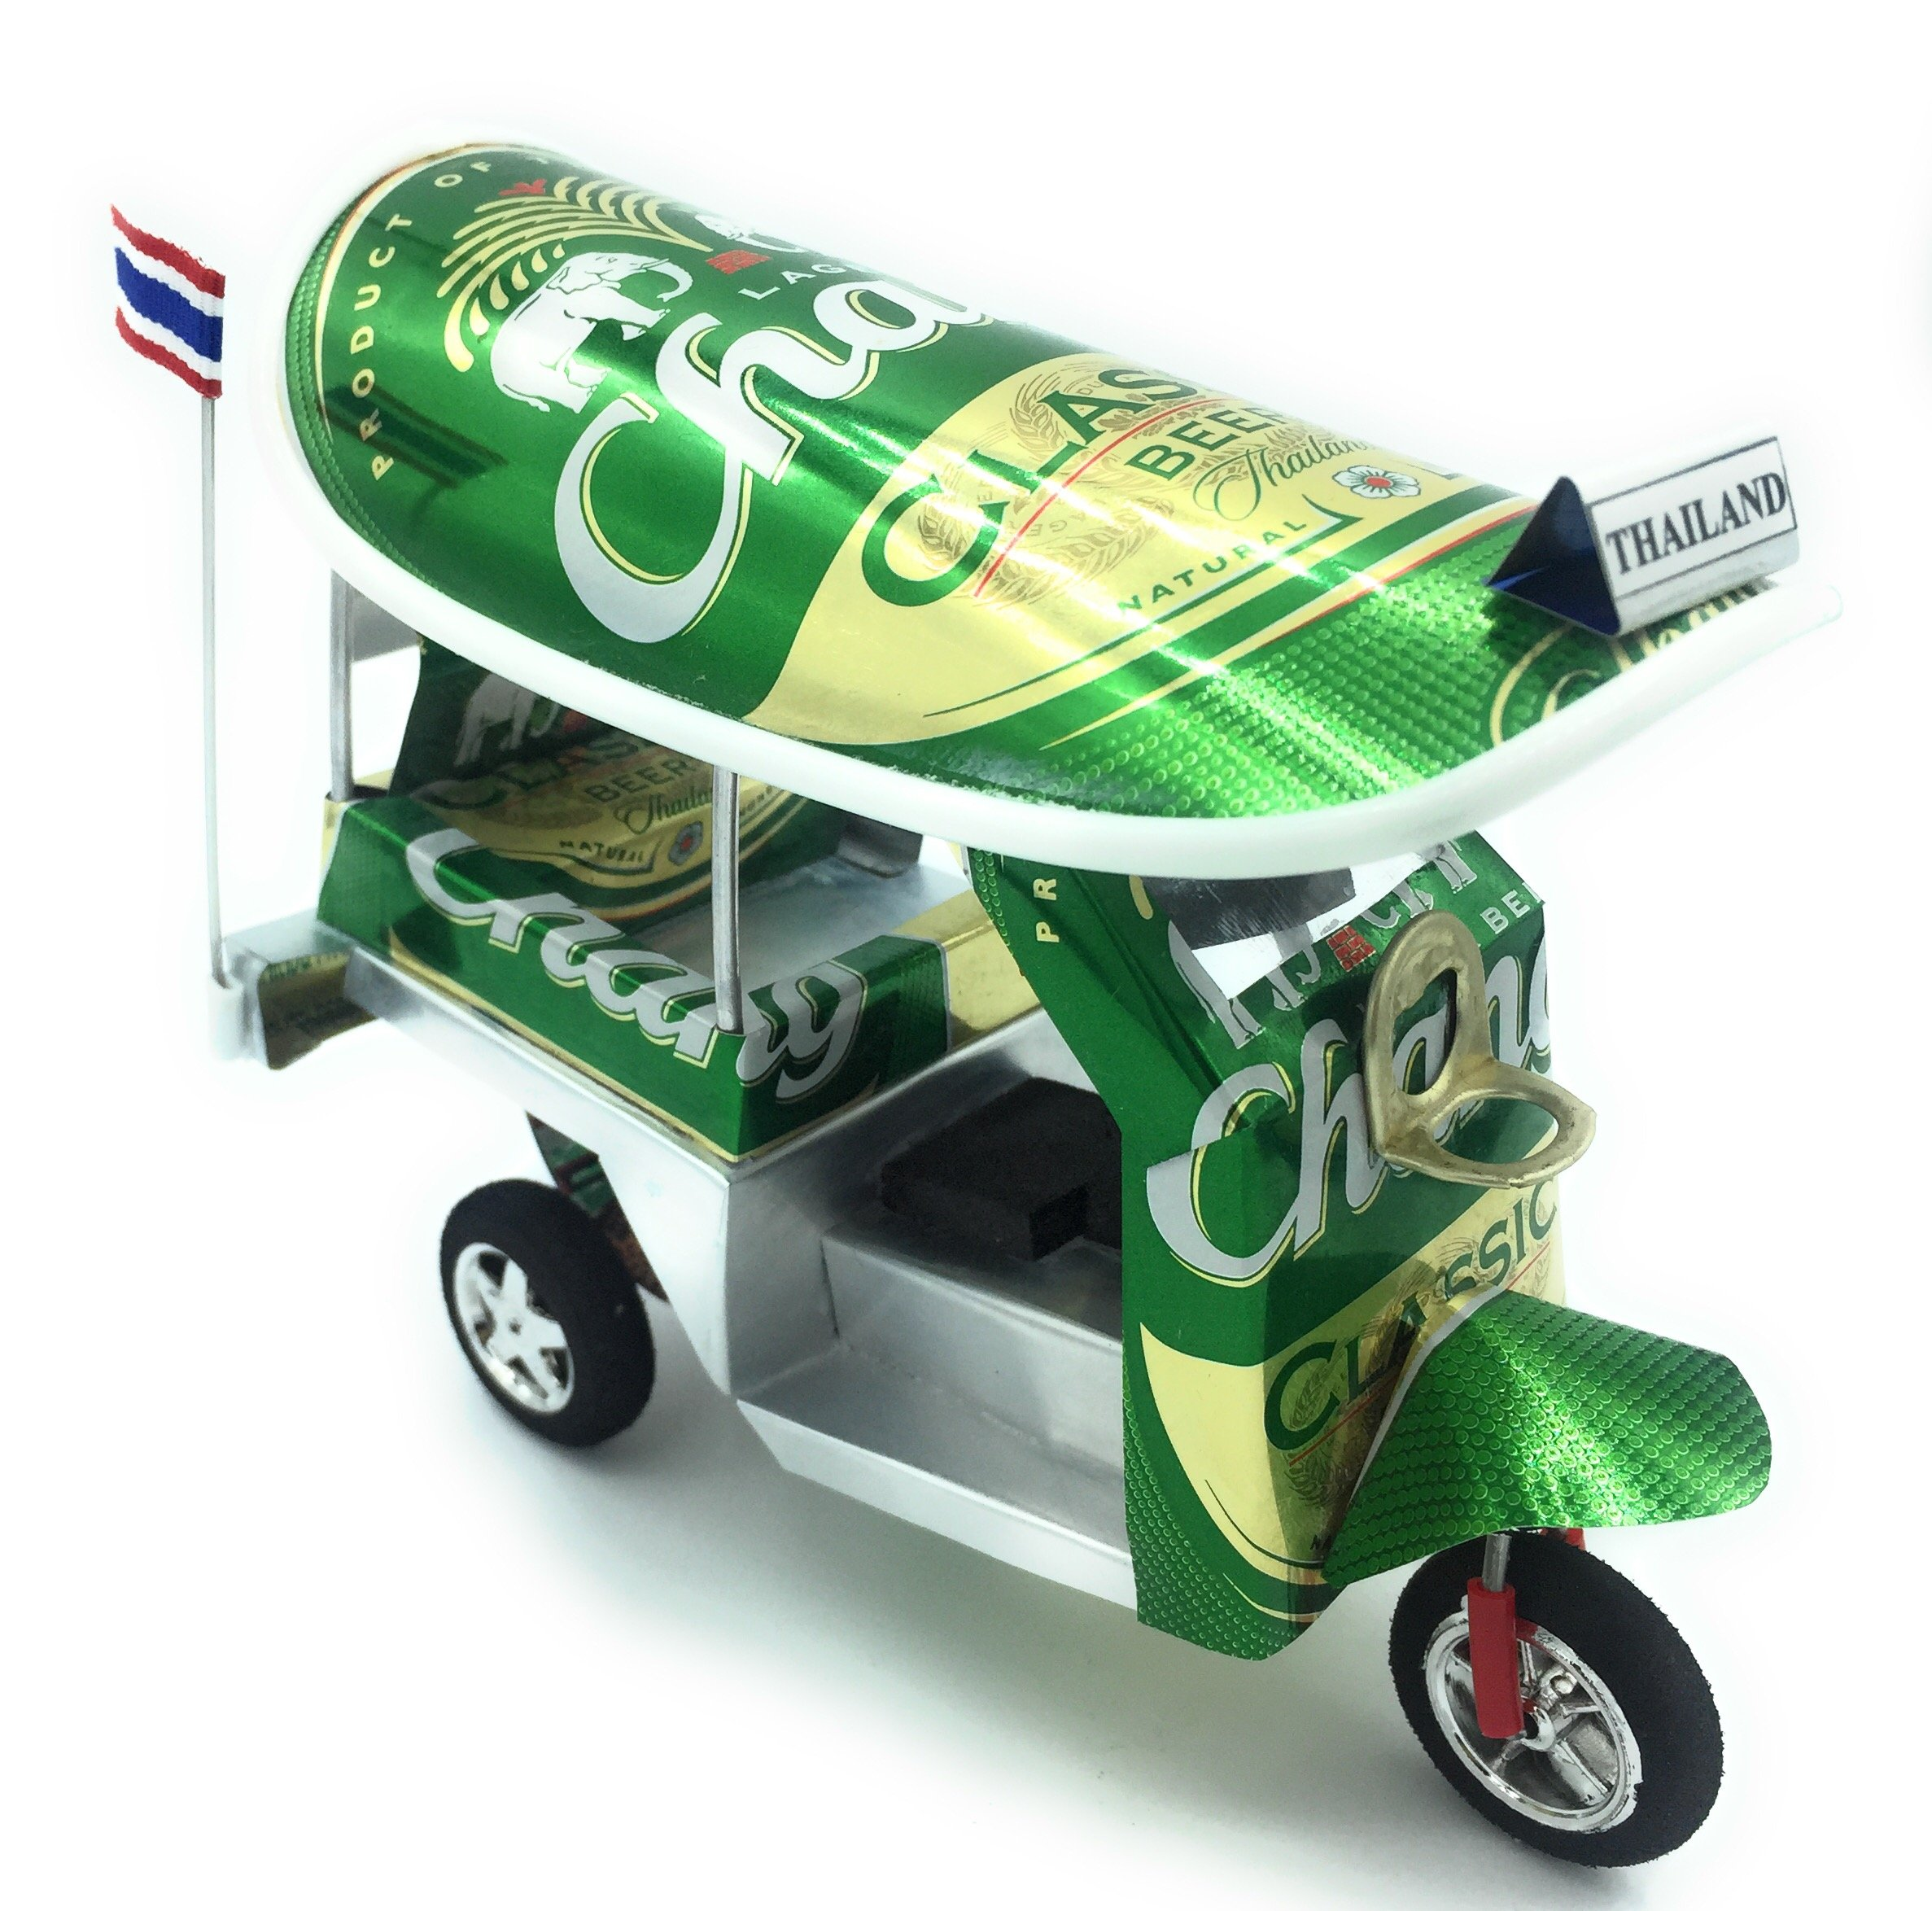 Thailand Thai tuktuk classic handmade Thai TUK TUK taxi made of Chang classic beer can aluminium model Collection show in room home office or great gift all seasion put in plastic clear box by WD store